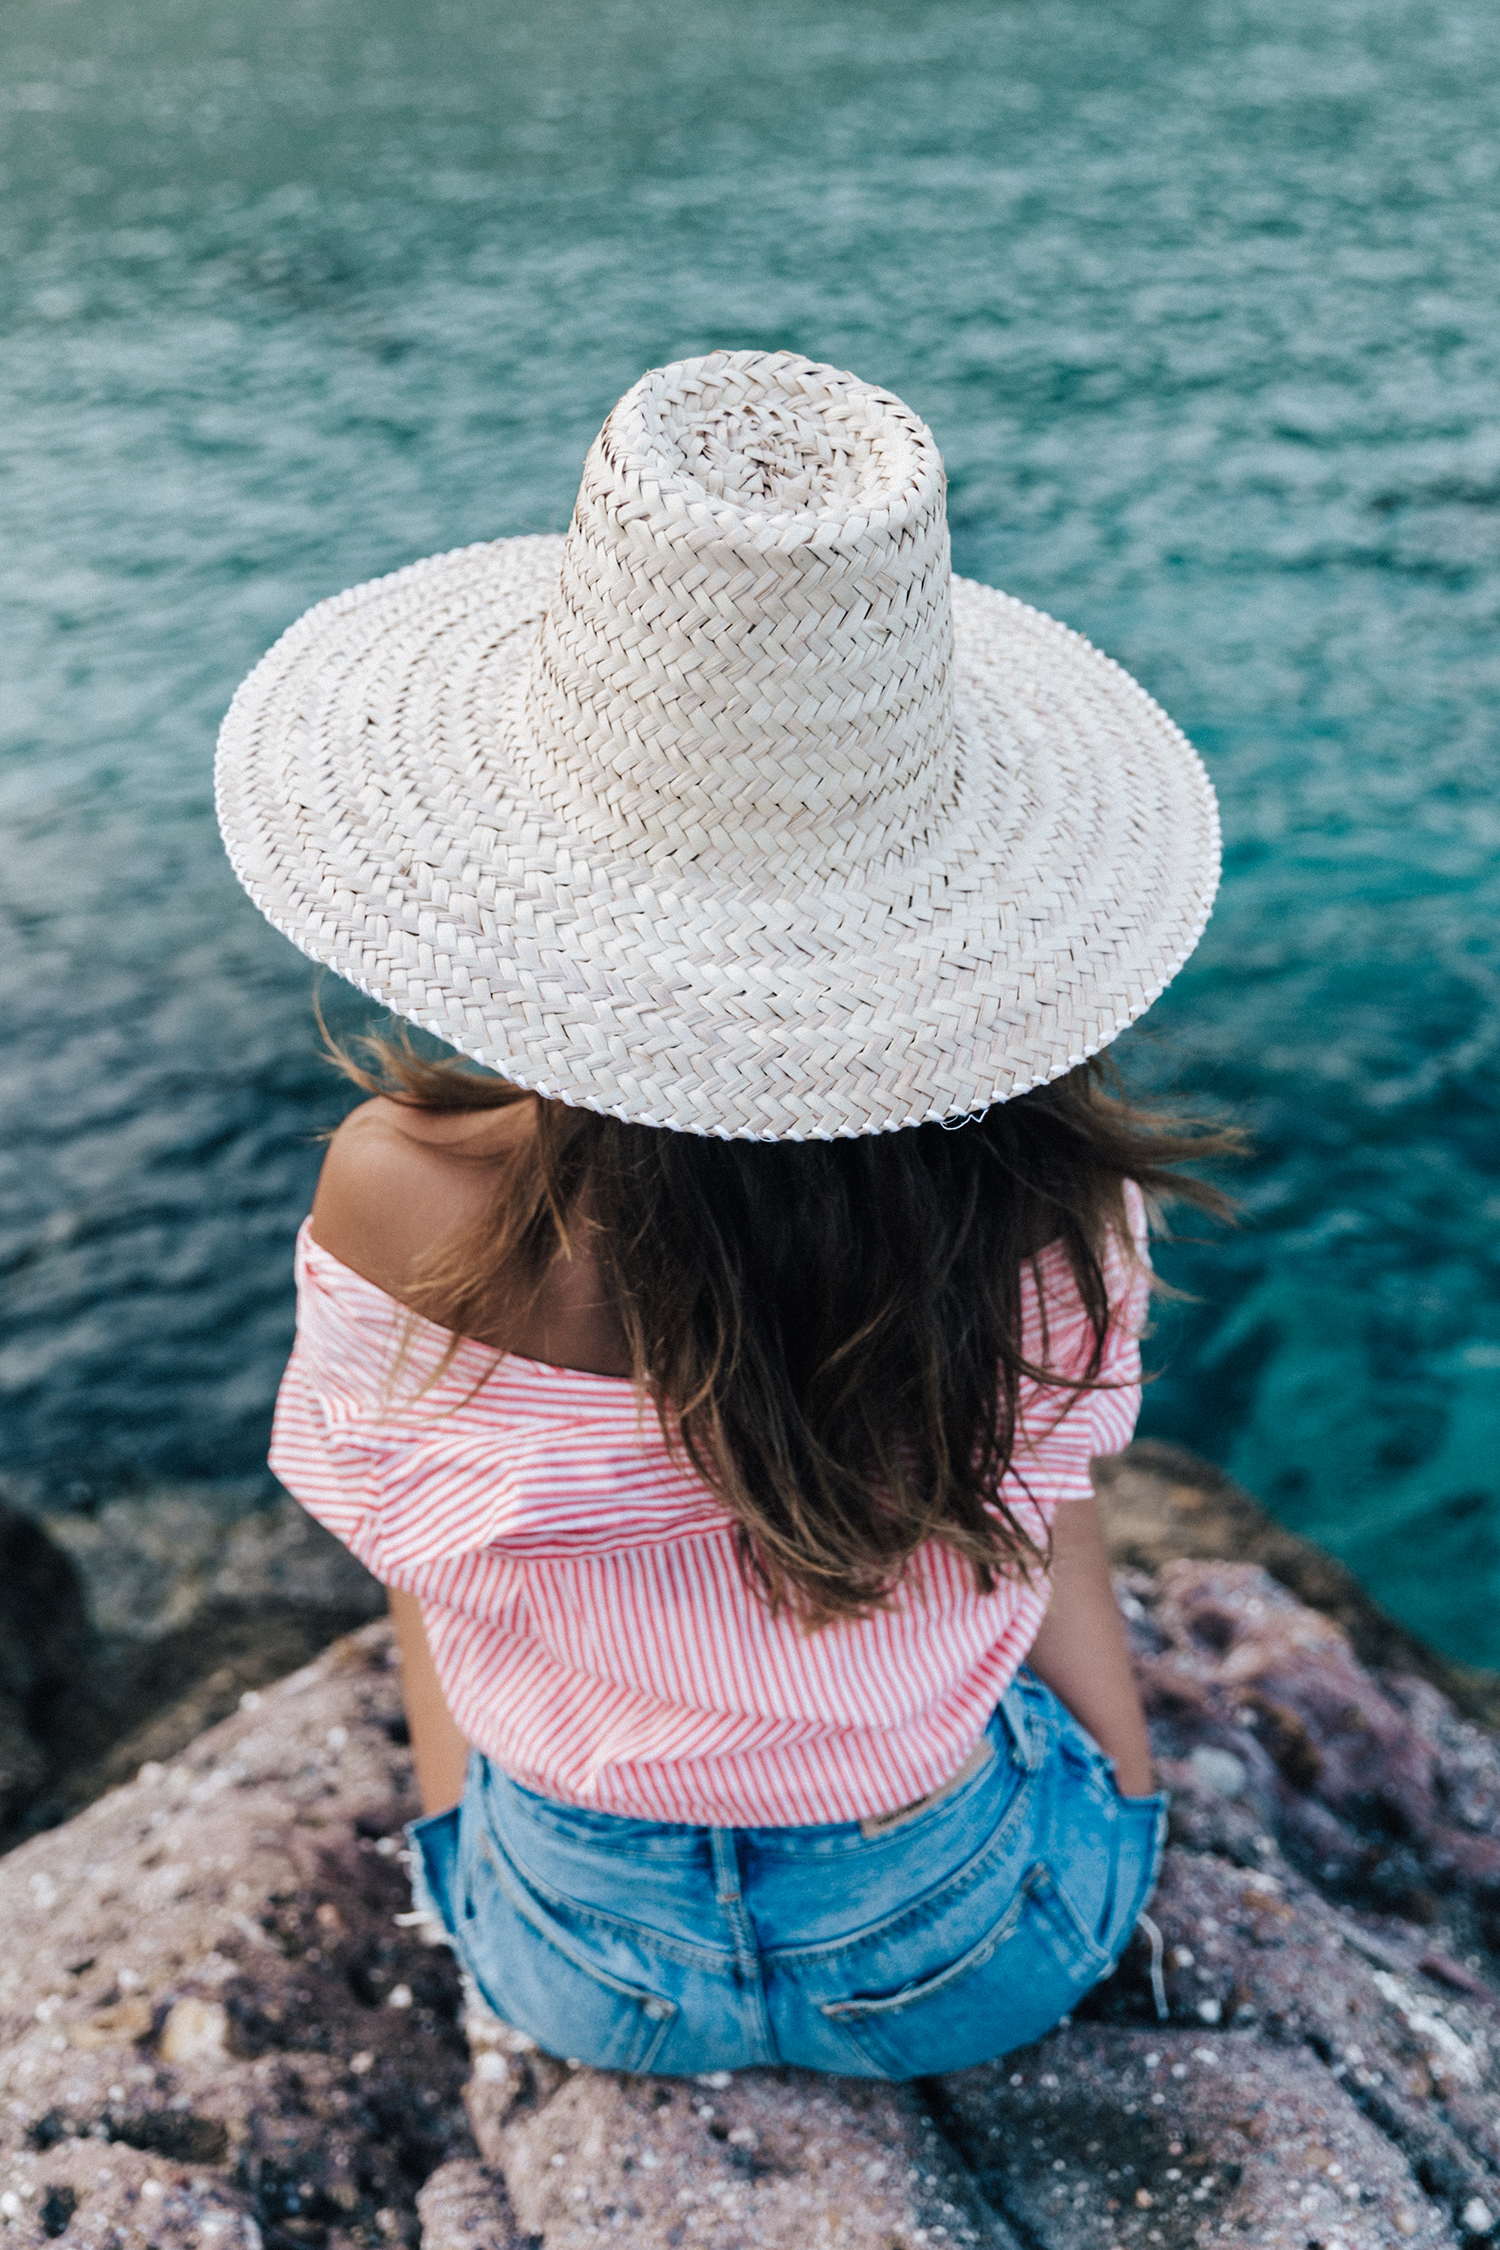 Mykonos-Collage_on_The_Road-Striped_Shirt-GRLFRND_Shorts-Straw_Hat-Denim-Espadrilles-Soludos_Escapes-Greece-Outfit-37